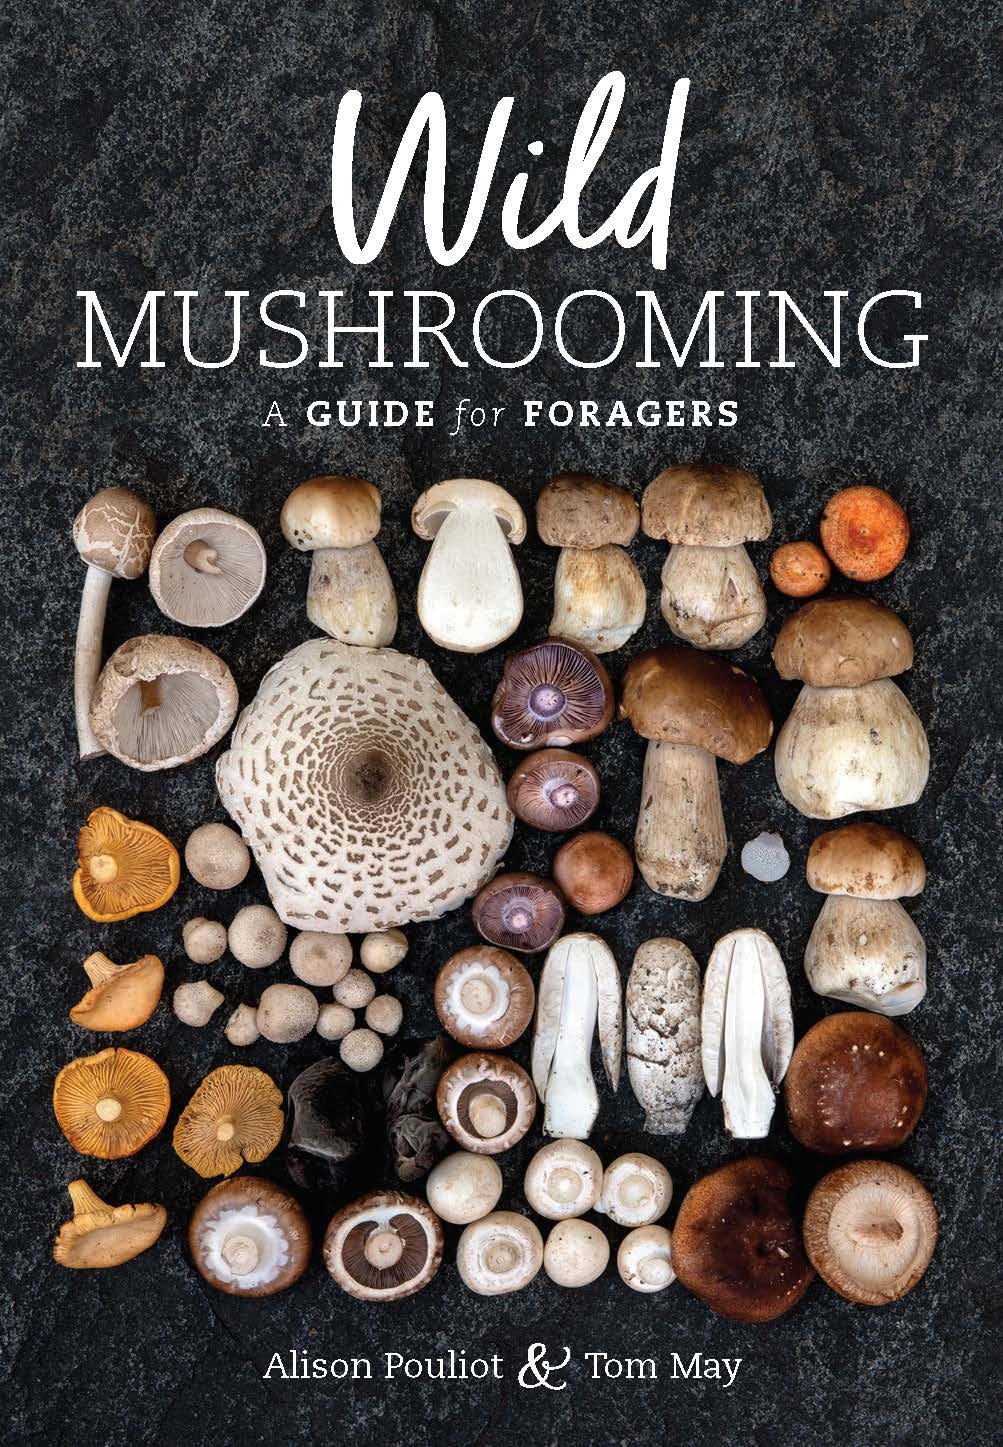 Wild Mushrooming: A Guide for Foragers